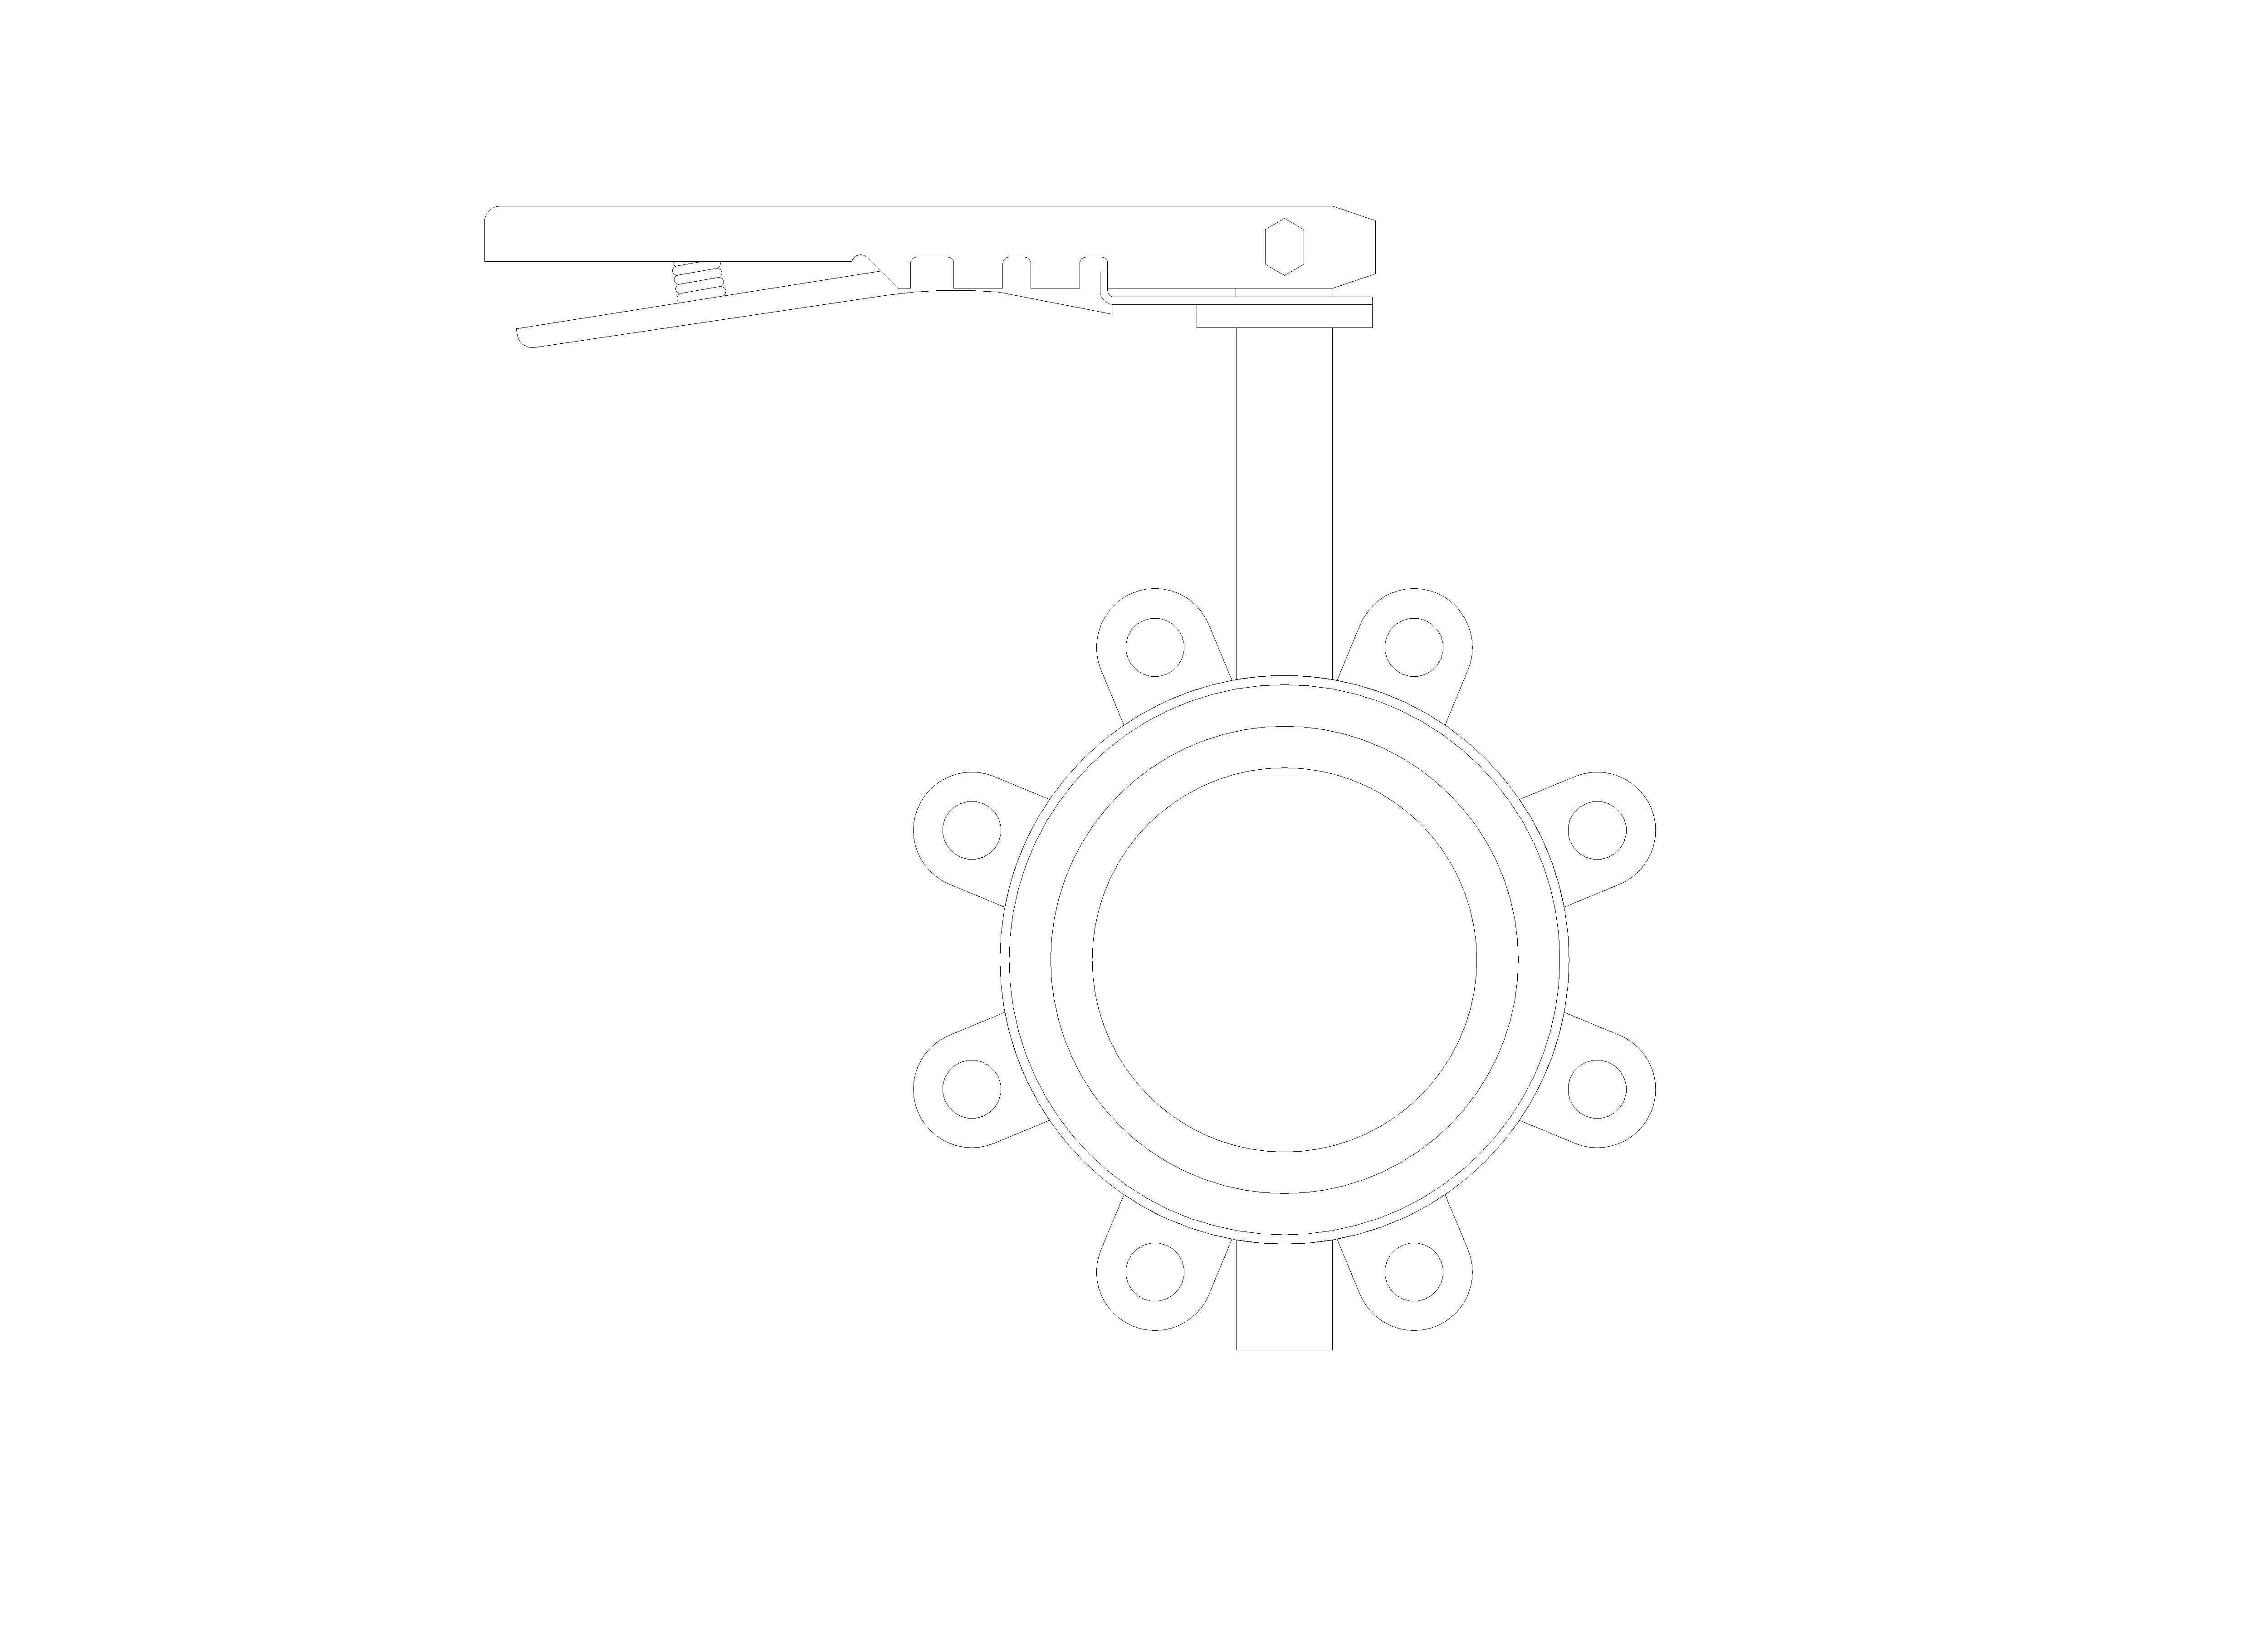 Image of Butterfly Valve Ductile Iron Fully Lugged Lever Operated - Fig 4970